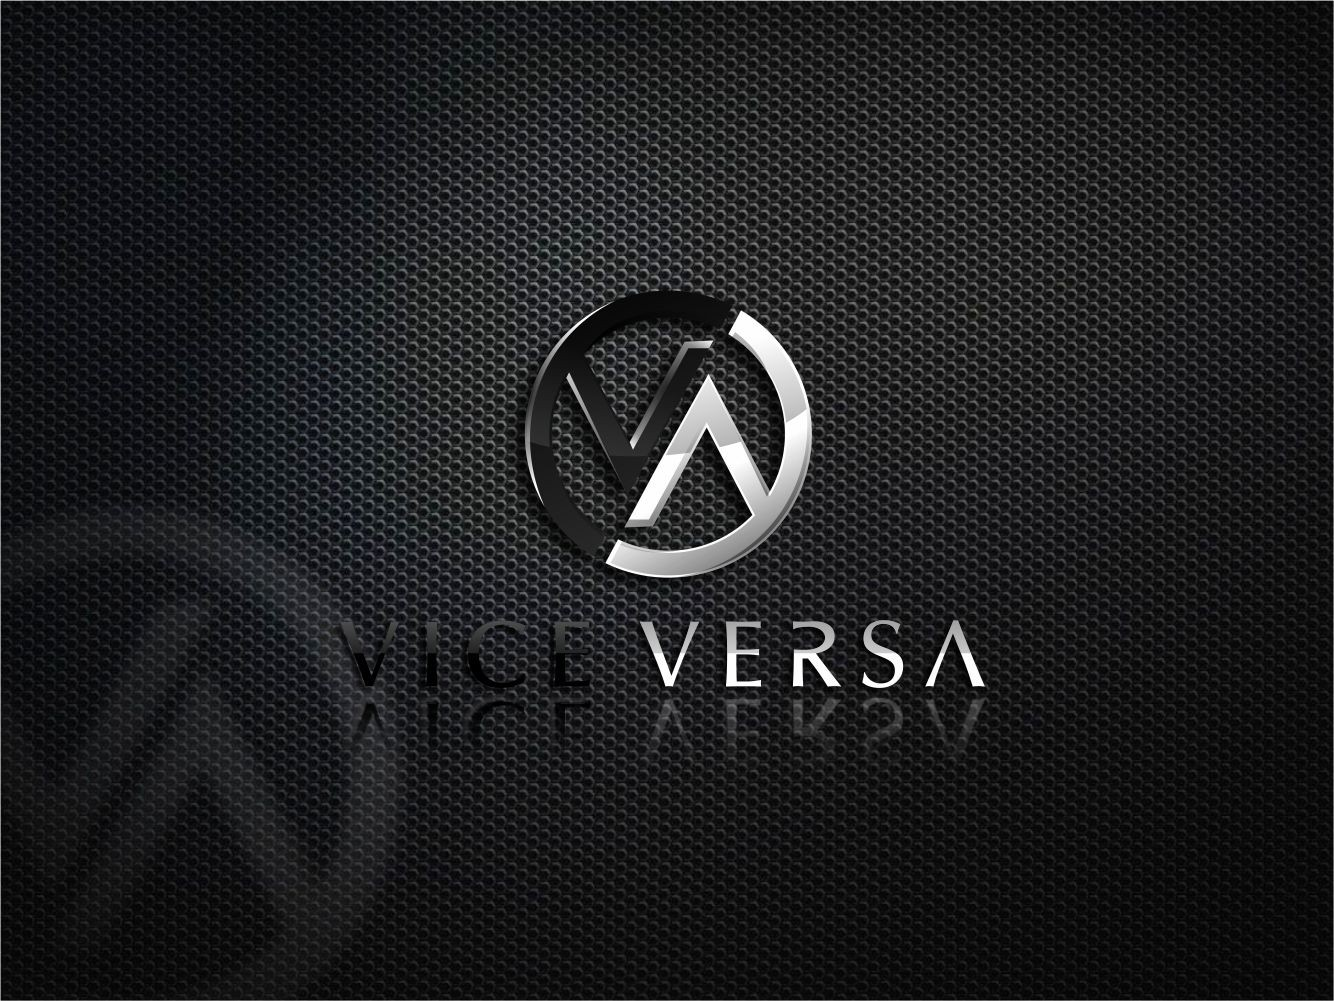 WANTED: a brilliant mind to help me design a one of a kind logo for Vice Versa!